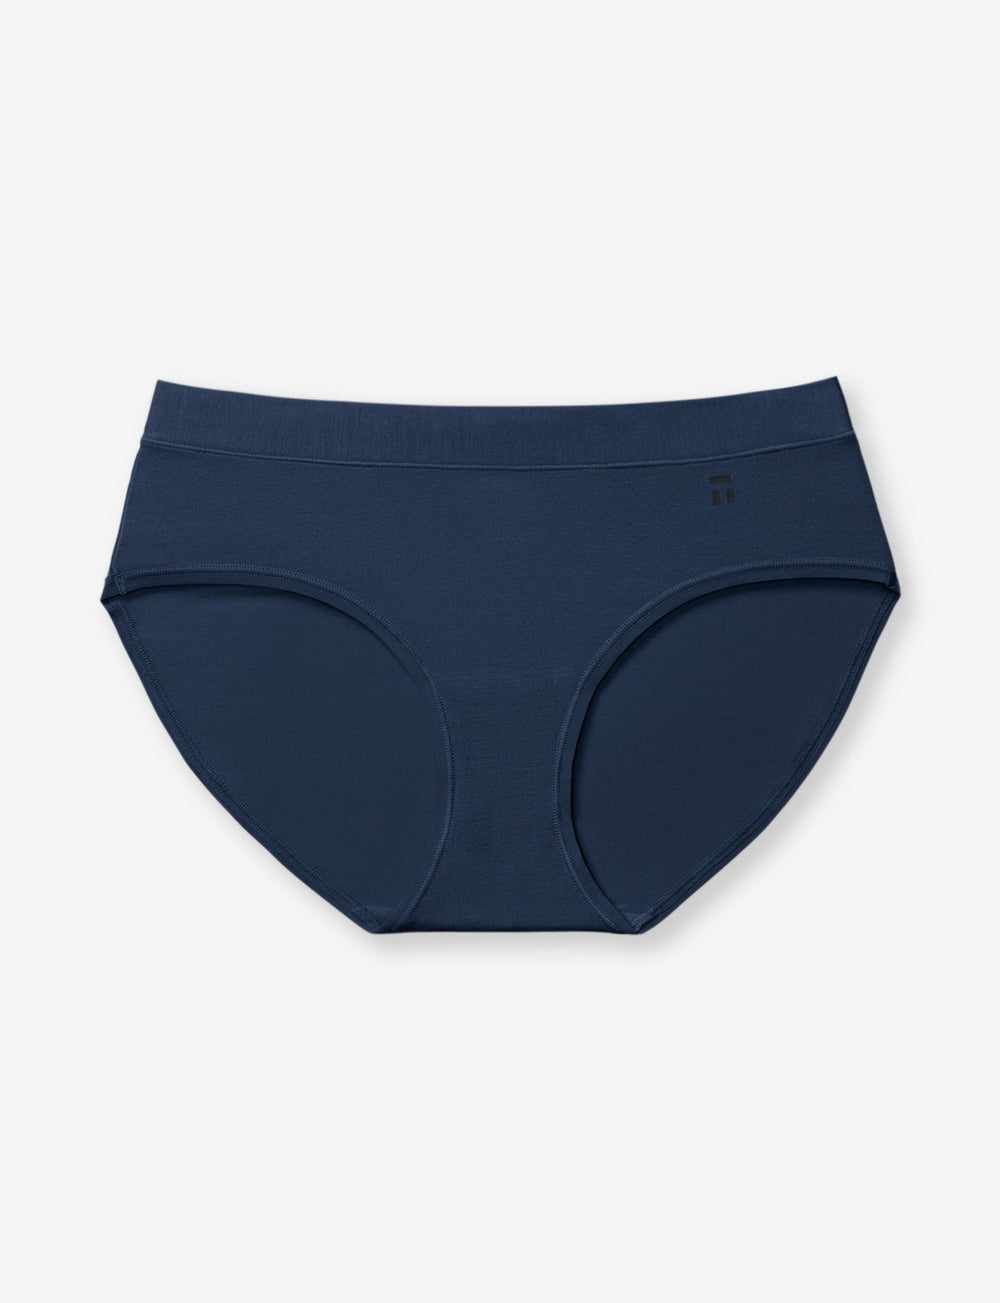 Women's Cool Cotton Brief Details Image